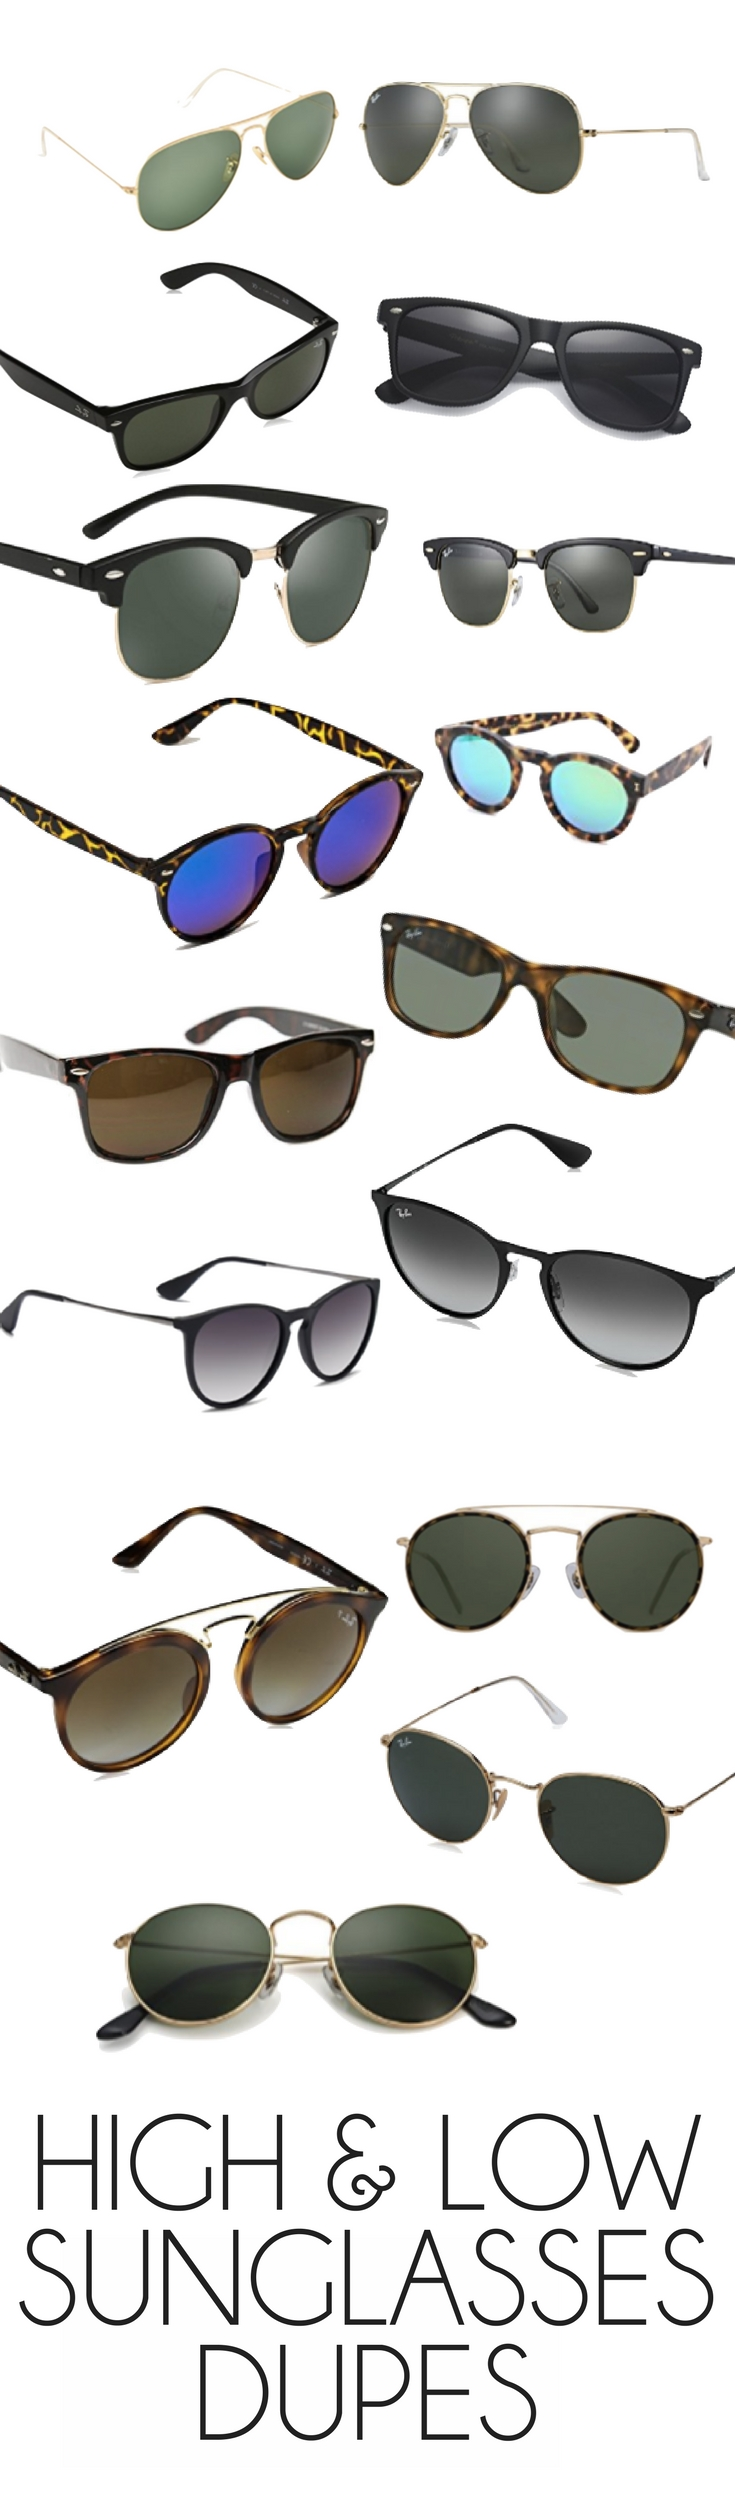 rayban sunglasses and their cheaper dupes - this list of high & low sunnies is SO good! splurge vs save, sunglasses edition